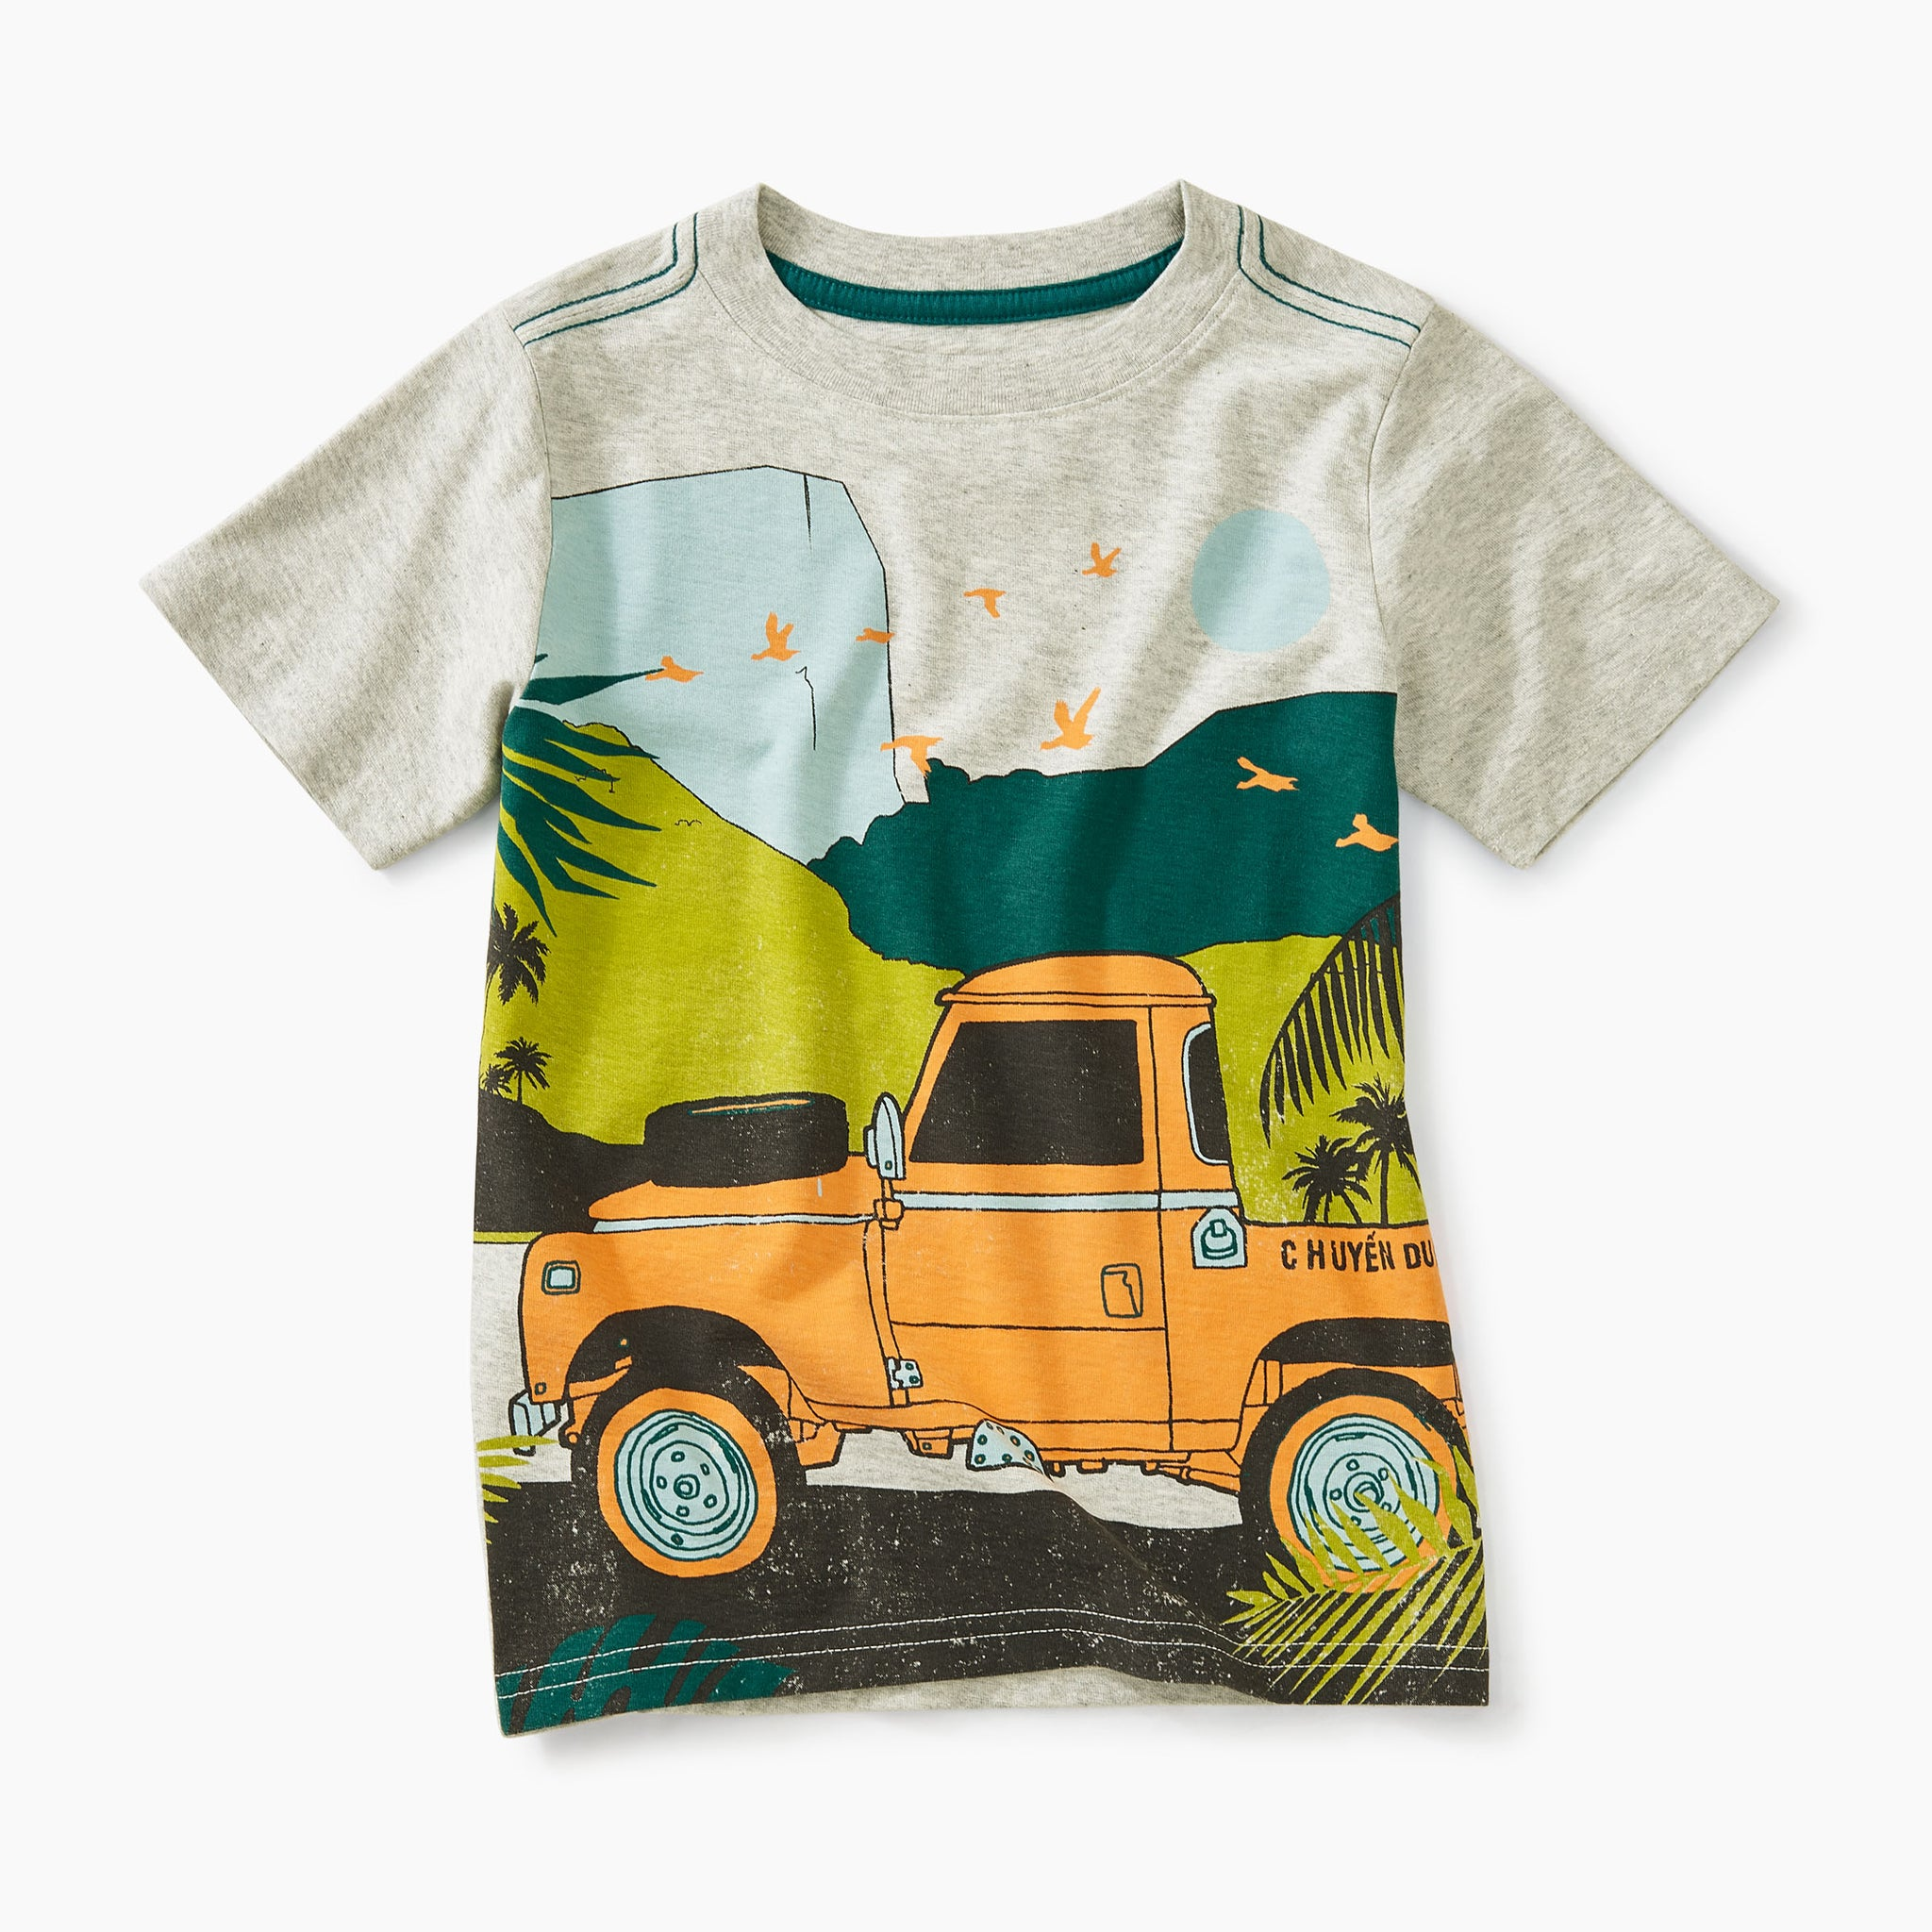 Trek Truck Graphic Tee - Light Gray Heather